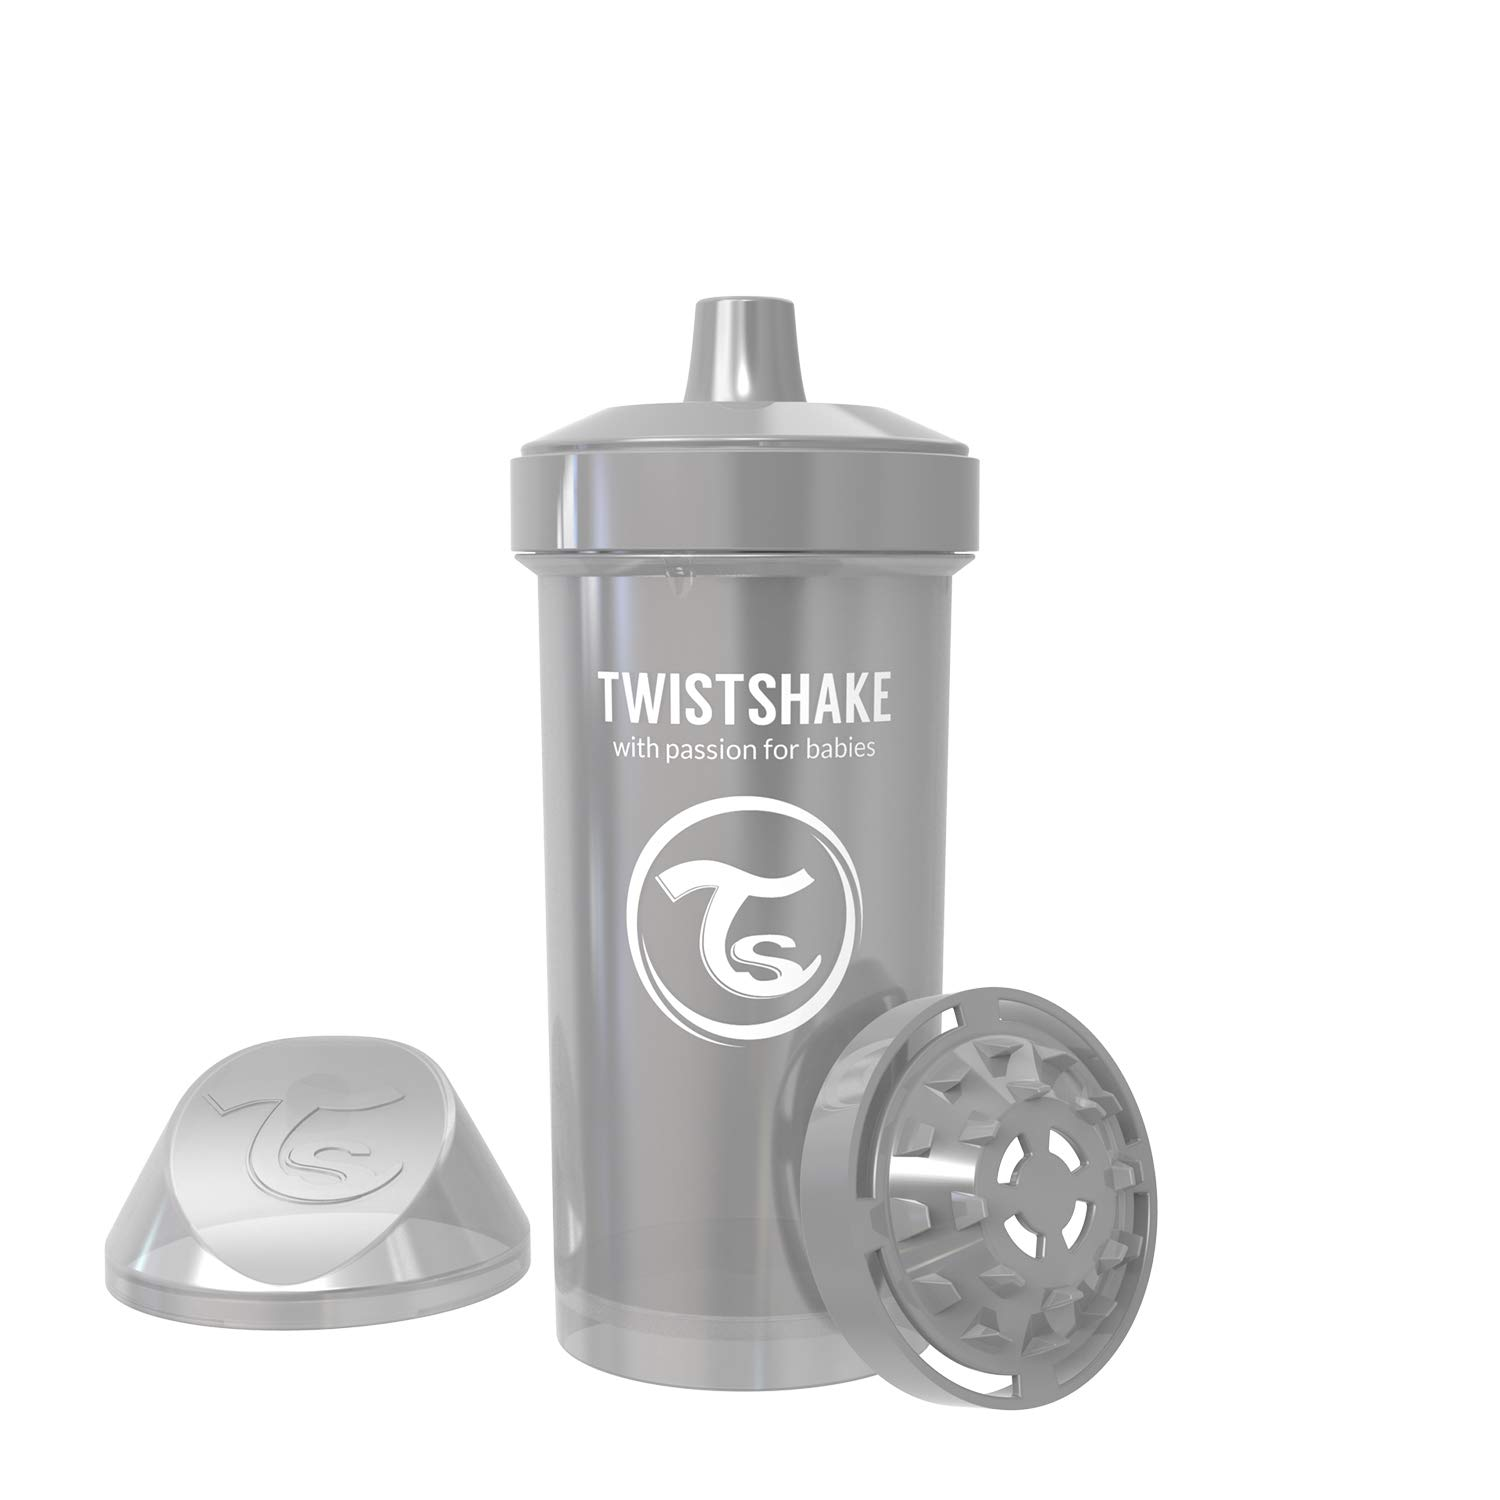 Twistshake Popular brand in the world Kid Cup 360ml 12oz Plastic Fruit Sippy Cups Limited Special Price Clear I